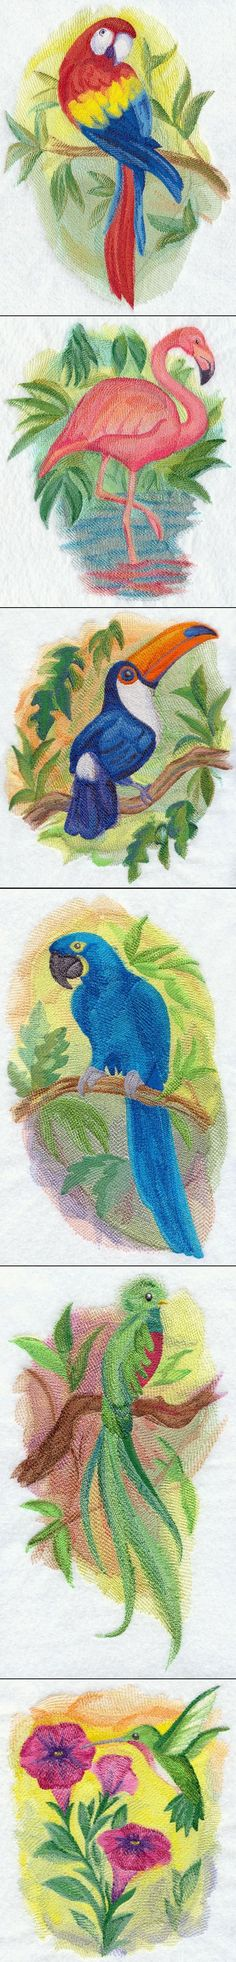 Watercolor Wonders Tropical Machine Embroidery Designs @ Embroidery Library